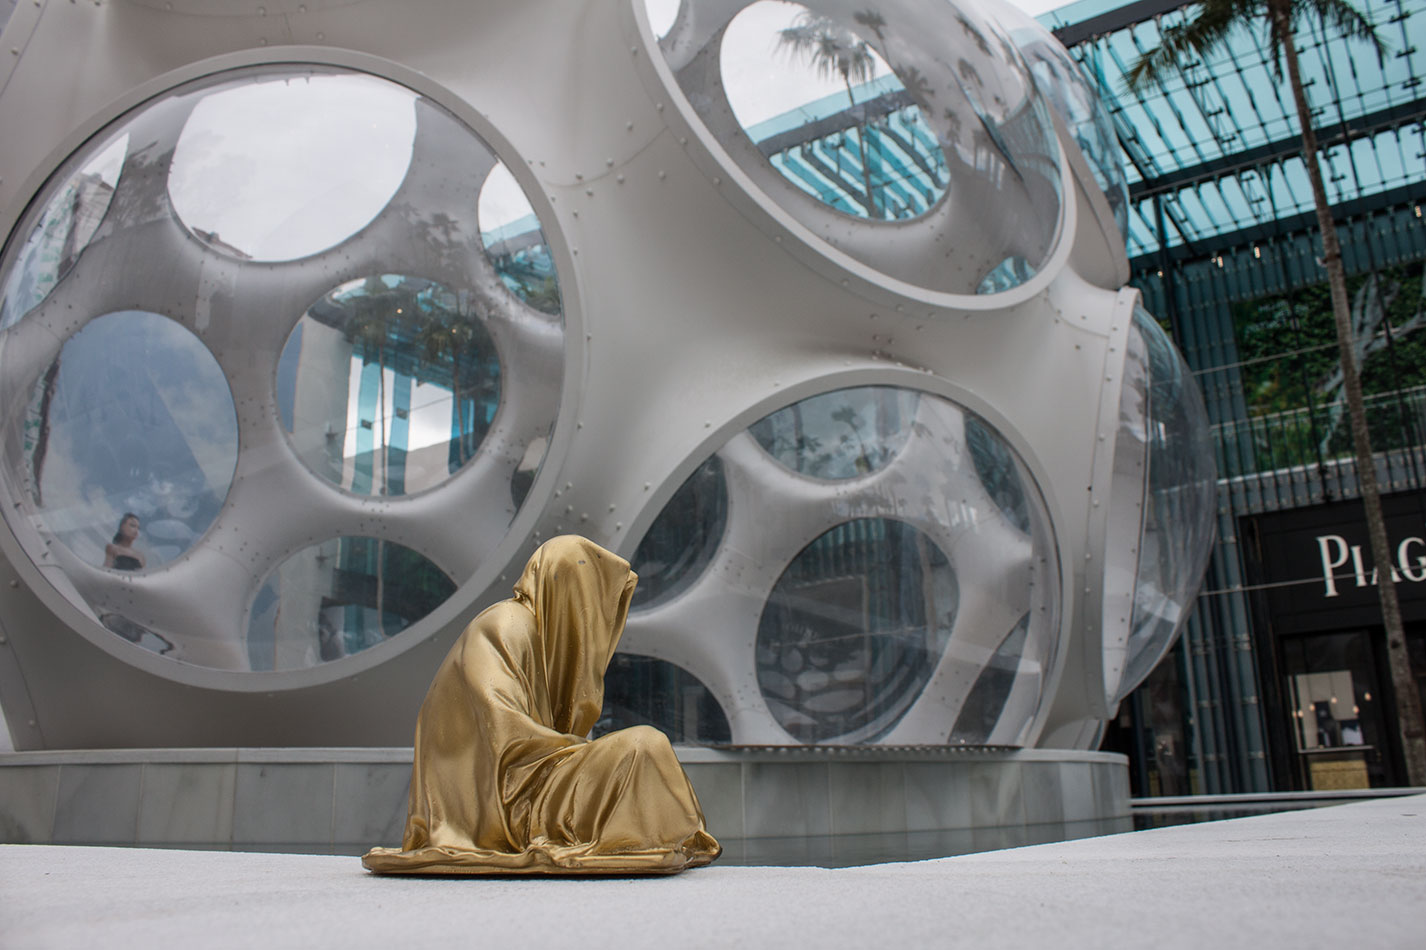 public-art-basel-miami-beach-fair-usa-florida-bass-museum-guardians-of-time-manfred-kili-kielnhofer-contemporary-fine-art-modern-arts-design-antiques-sculpture-6640